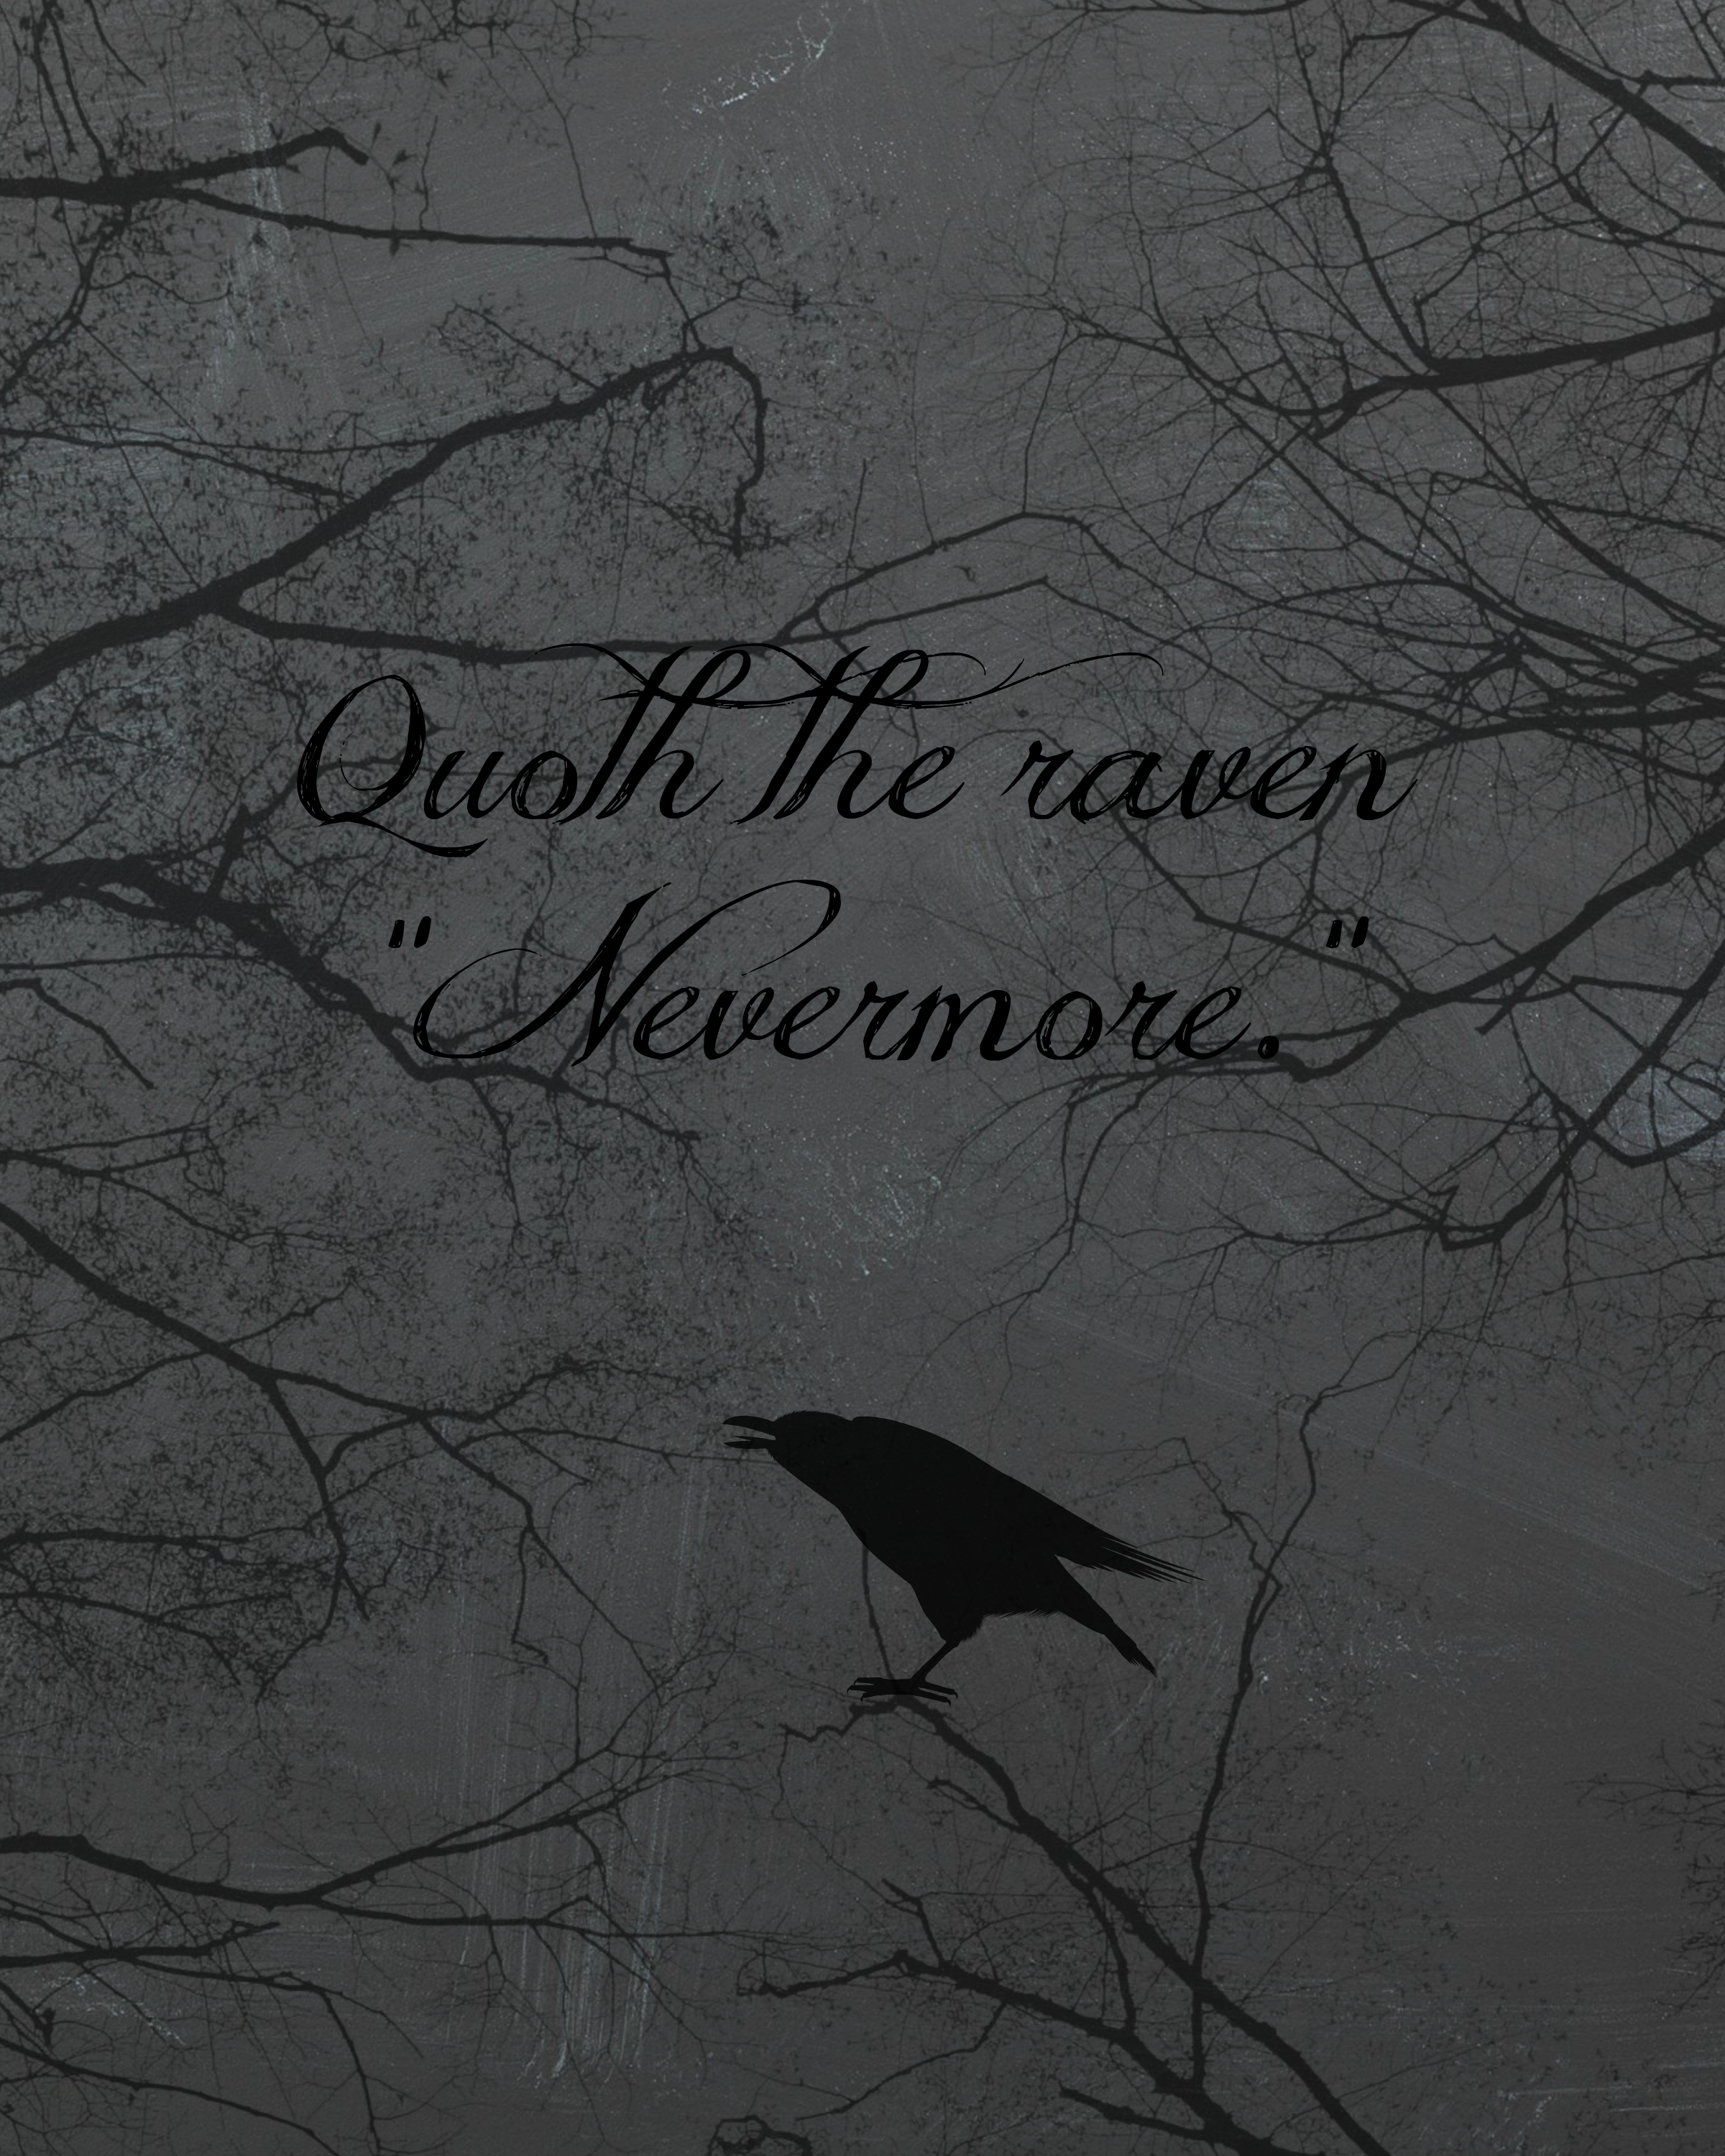 Quoth-the-raven-Nevermore.-printable-from-cupcakesandcrinoline ...